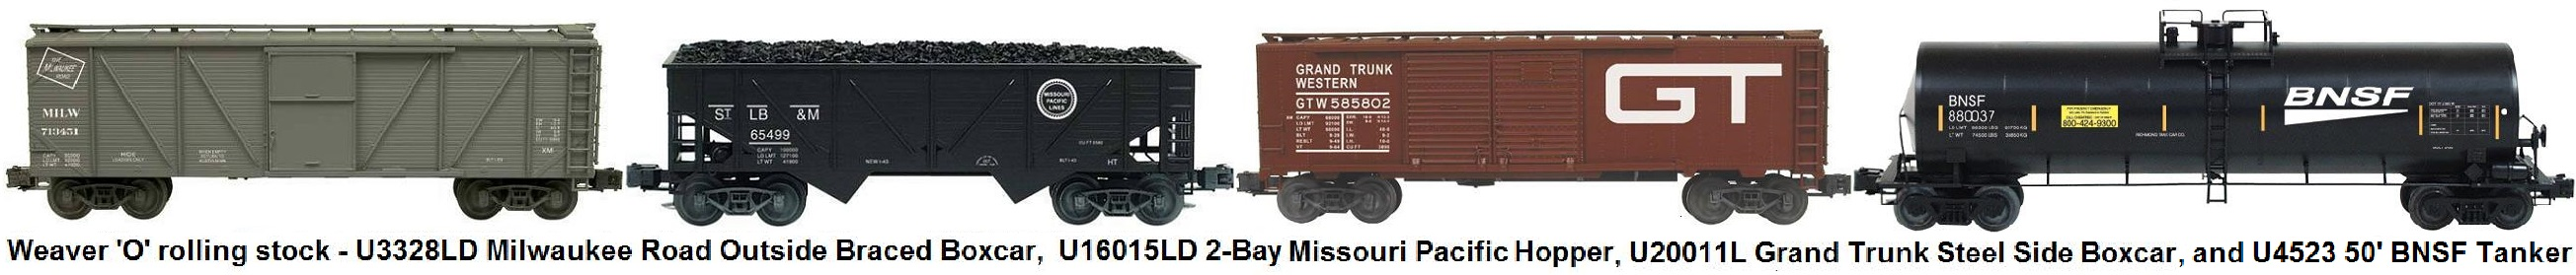 Weaver 'O' gauge Milwaukee Road U3328LD Outside Braced Boxcar, Missouri Pacific U16015LD 2-Bay Composite Hopper, Grand Trunk Western U20011L Steel Side Double Door Boxcar and BNSF U4523 50 foot tank car